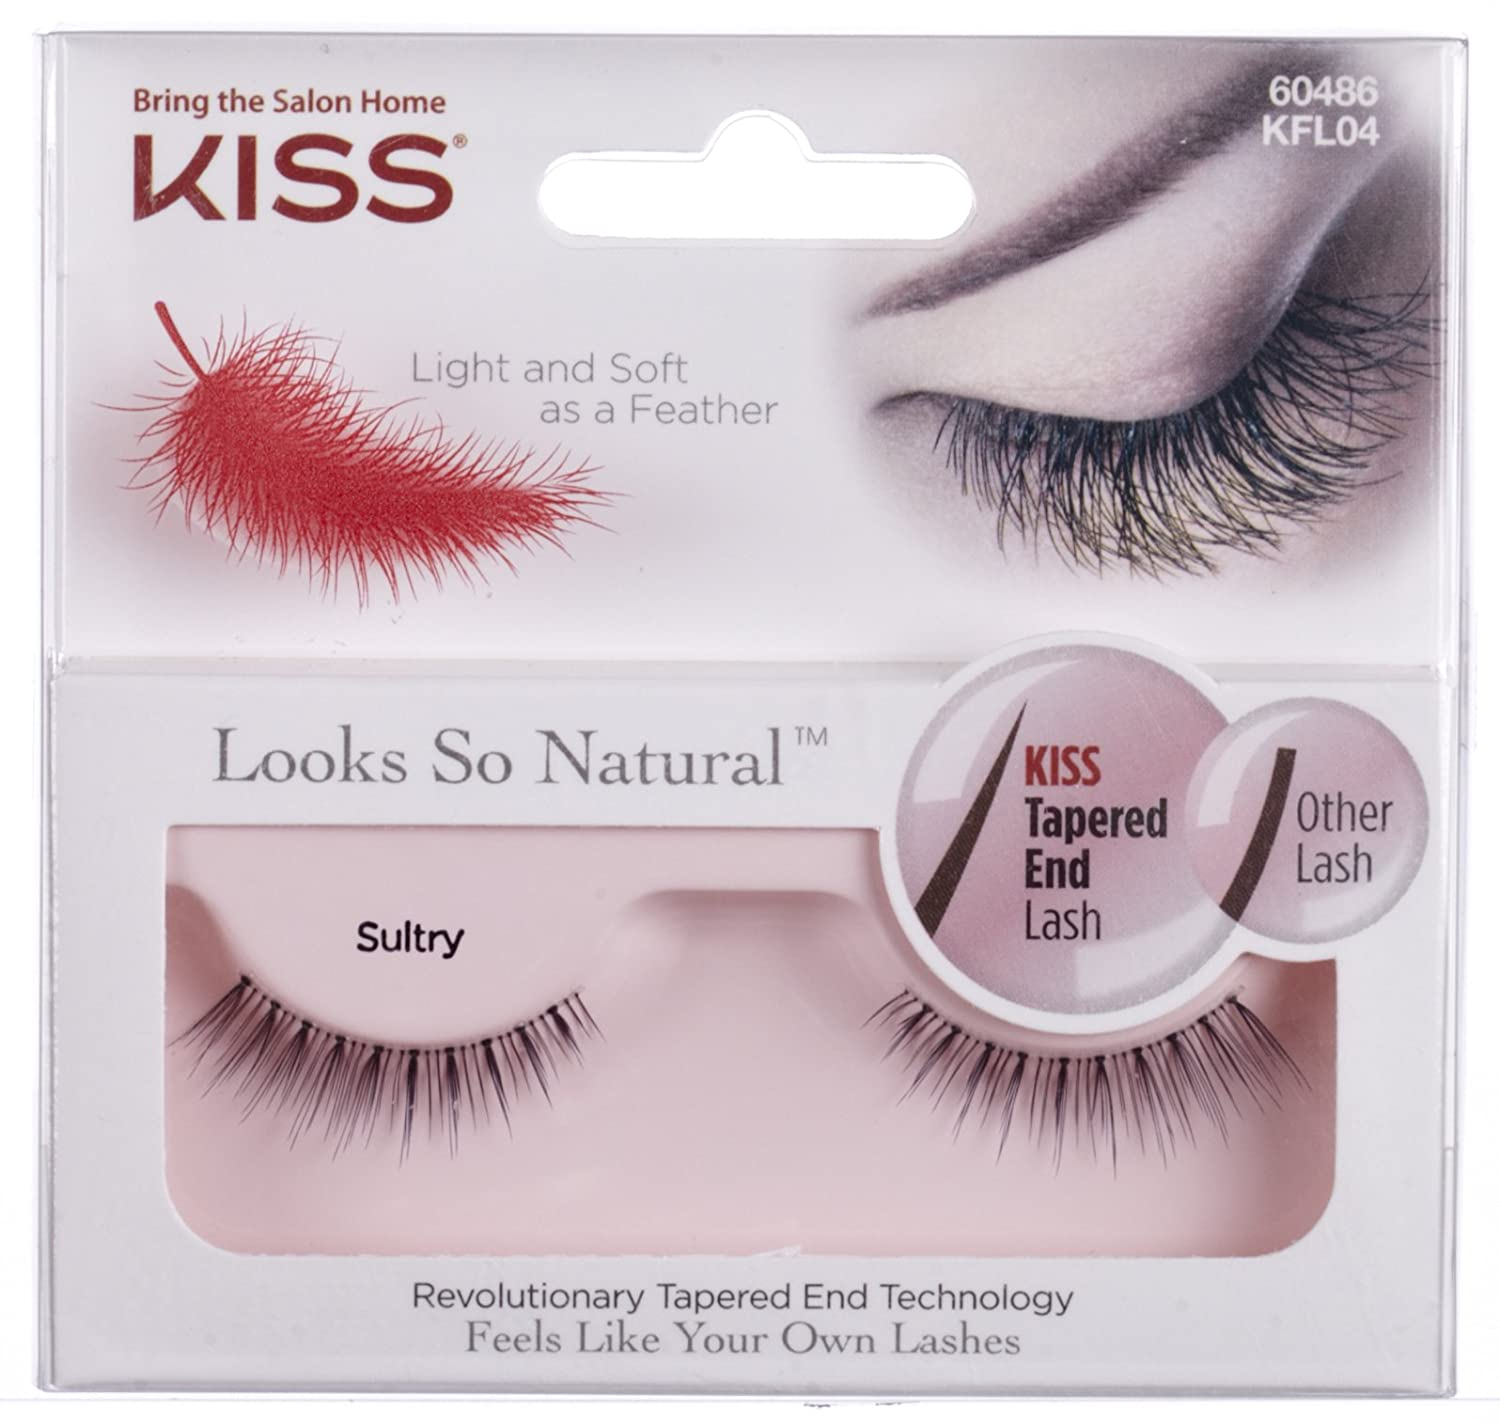 8a91f529fd3 Amazon.com : Kiss Products Looks So Natural Lashes, Sultry, 0.03 Pounds  (Pack of 3) : Beauty